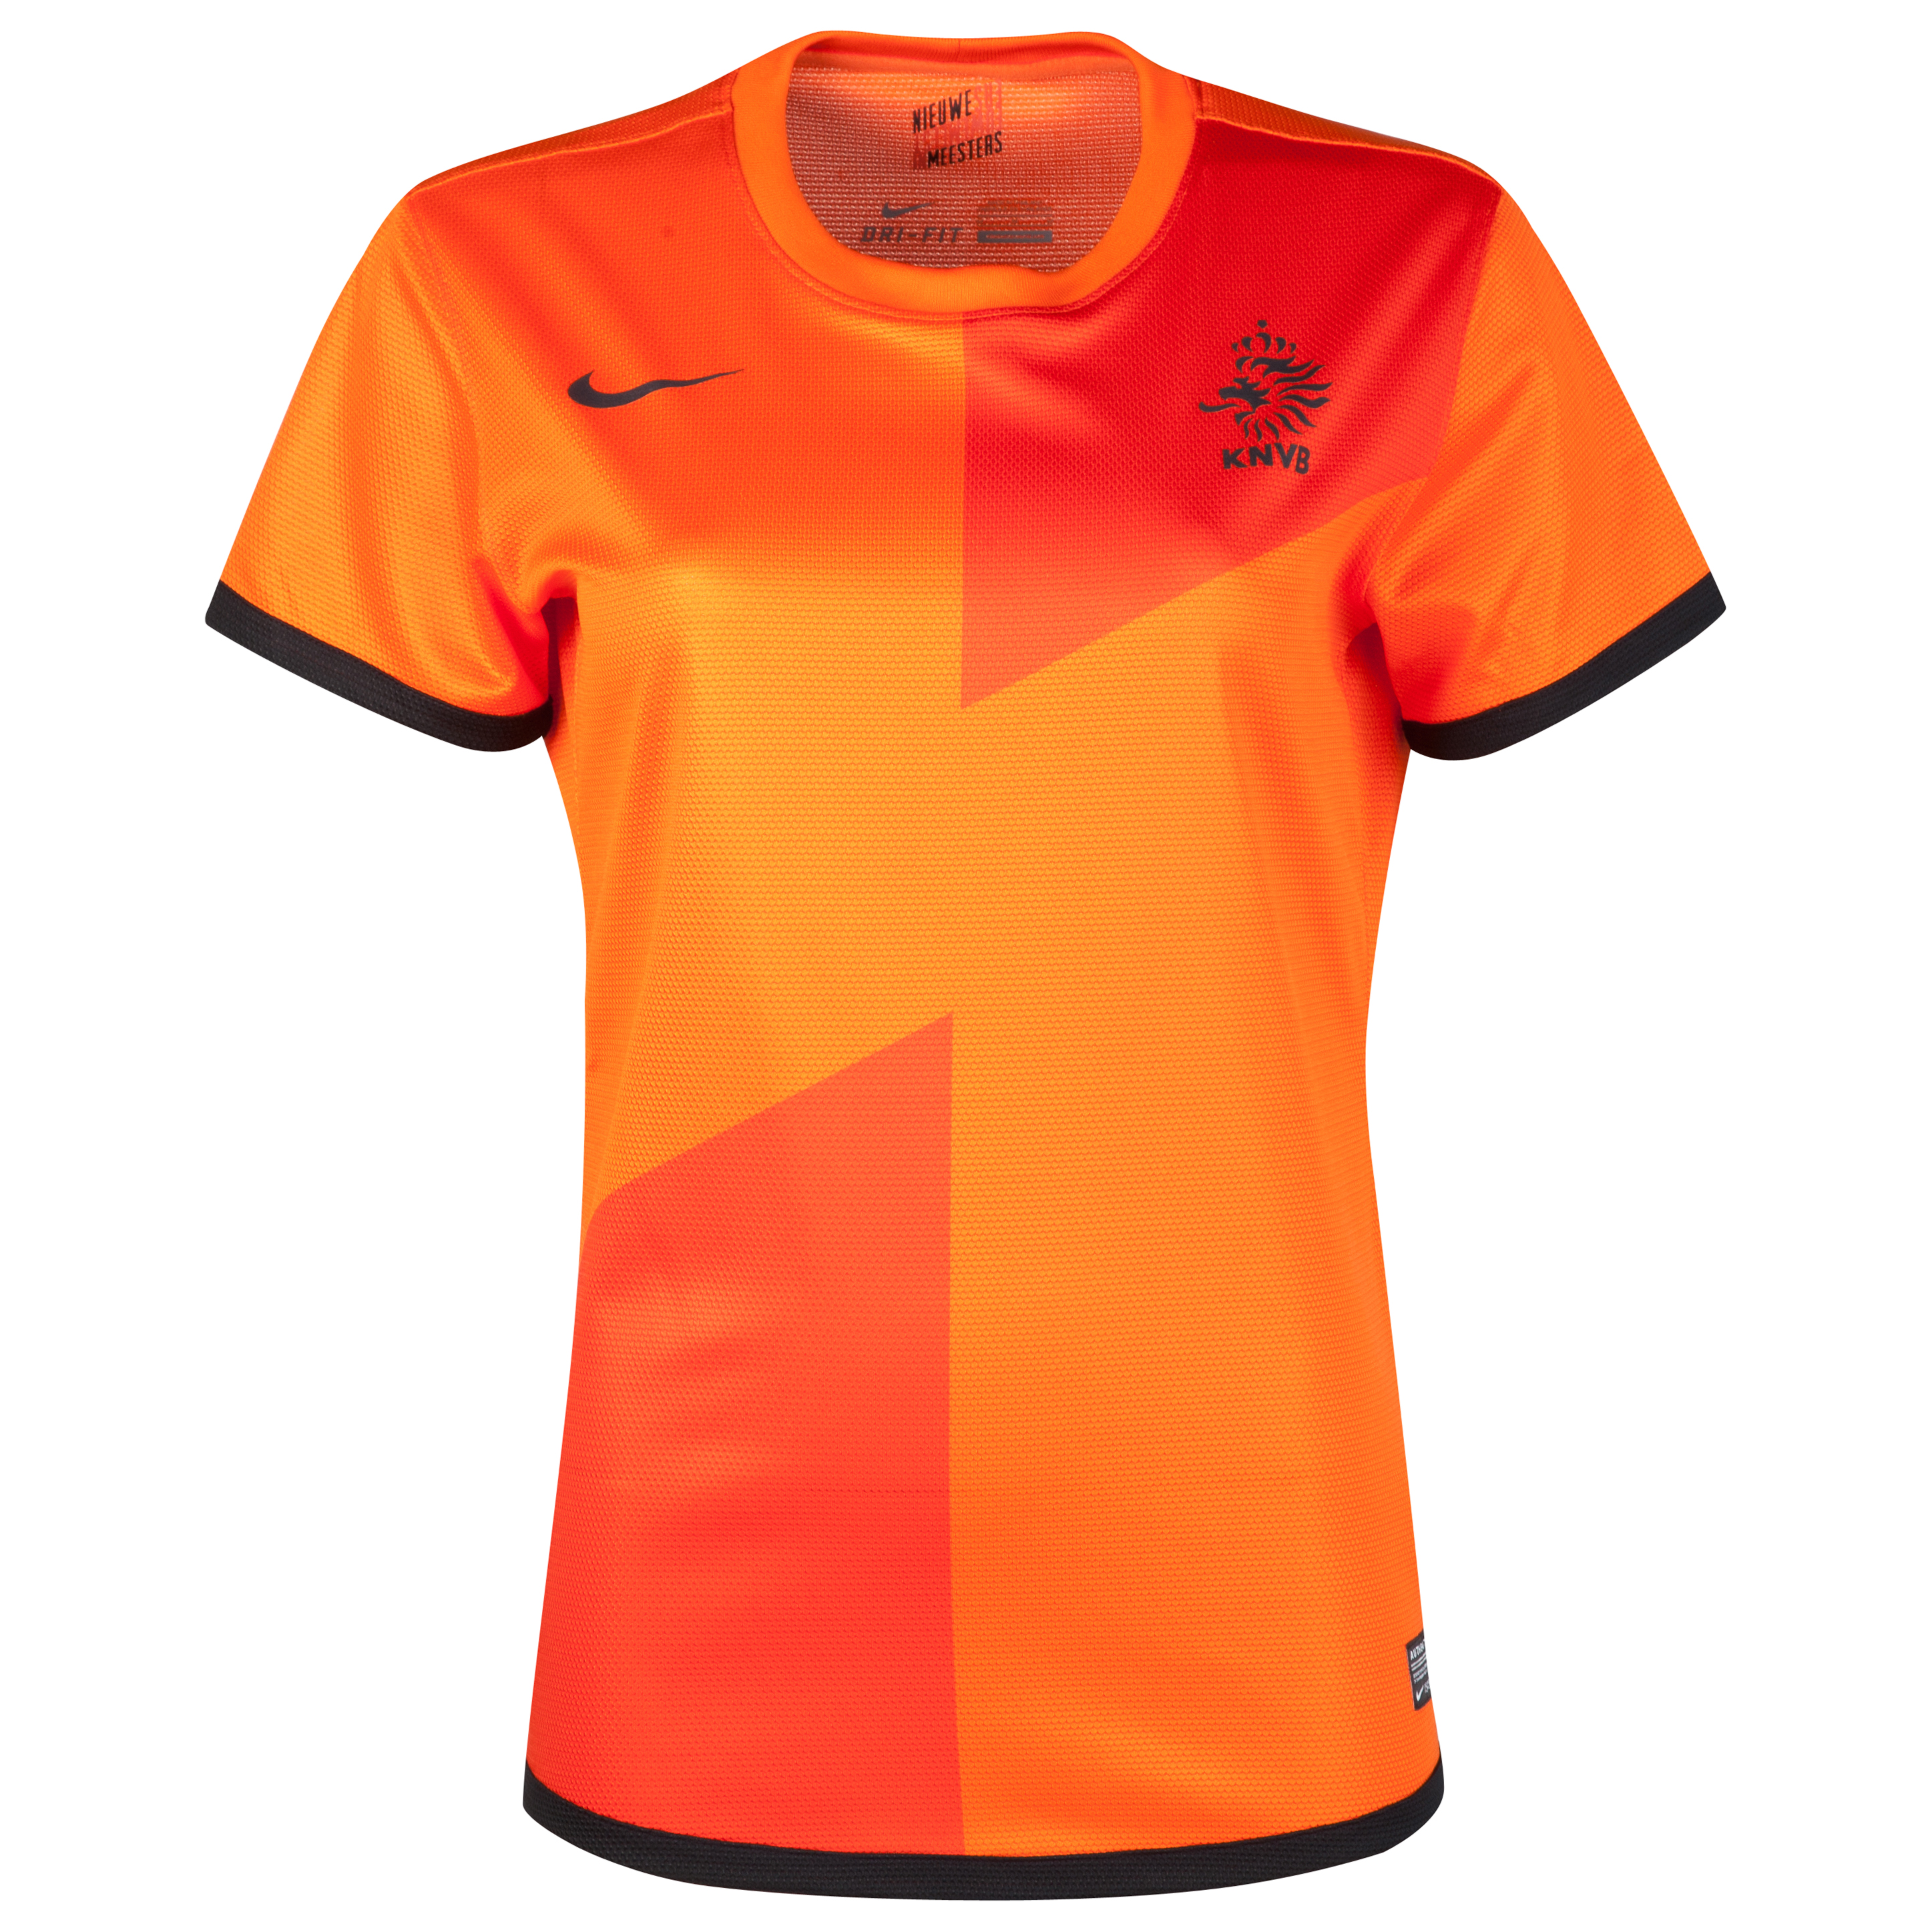 Netherlands Home Shirt 2012/13 - Womens